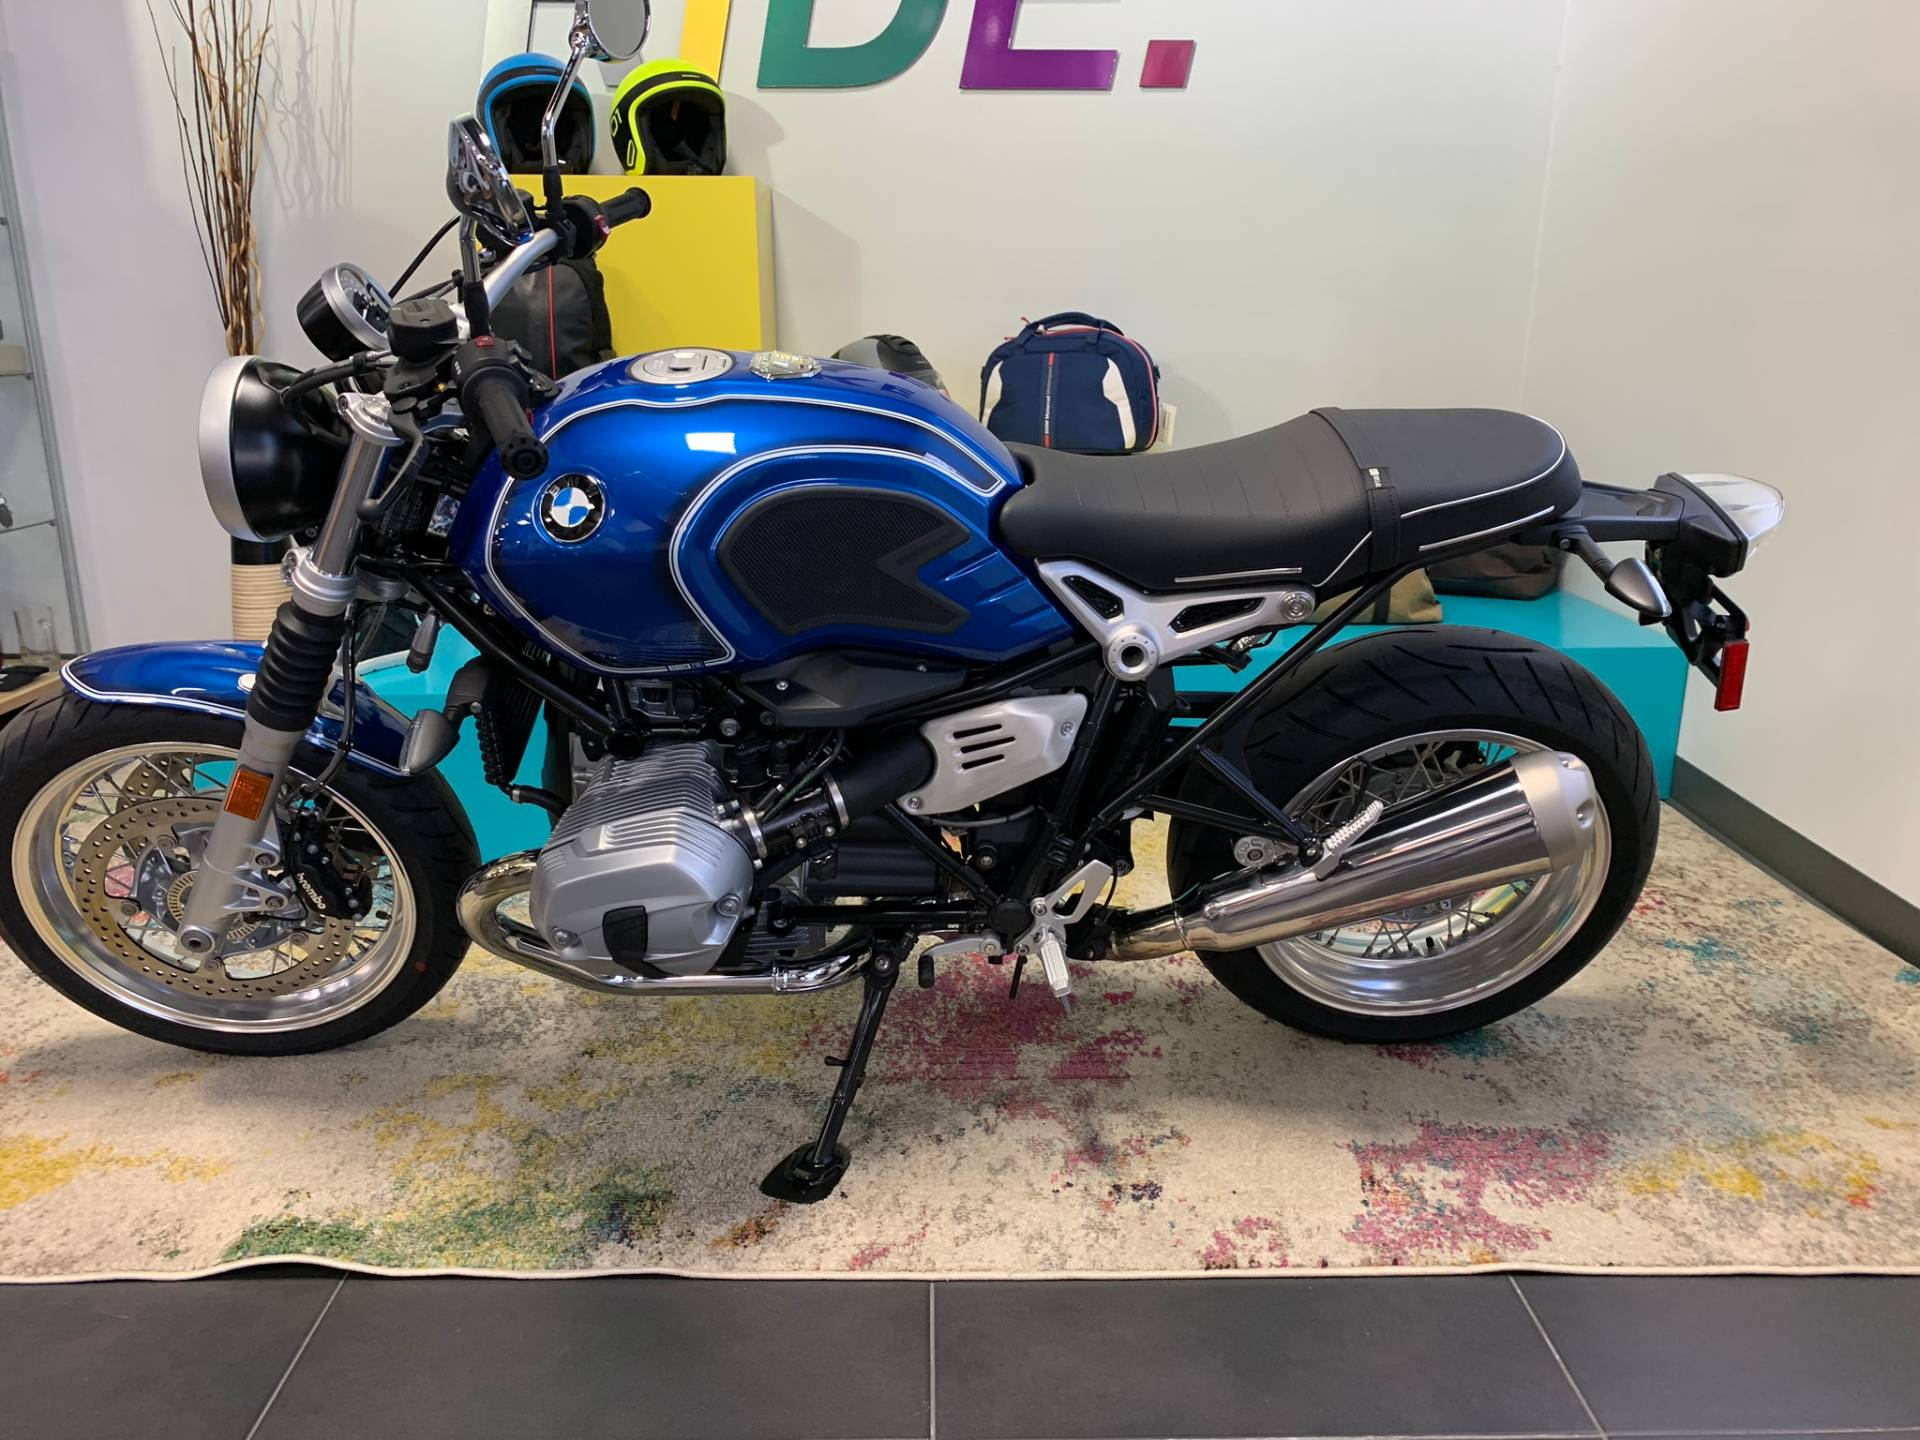 New 2020 2019 BMW R NineT for sale, BMW for sale, BMW Motorcycle Café Racer, new BMW Caffe, Cafe Racer, BMW. BMW Motorcycles of Miami, Motorcycles of Miami, Motorcycles Miami, New Motorcycles, Used Motorcycles, pre-owned. #BMWMotorcyclesOfMiami #MotorcyclesOfMiami. - Photo 32